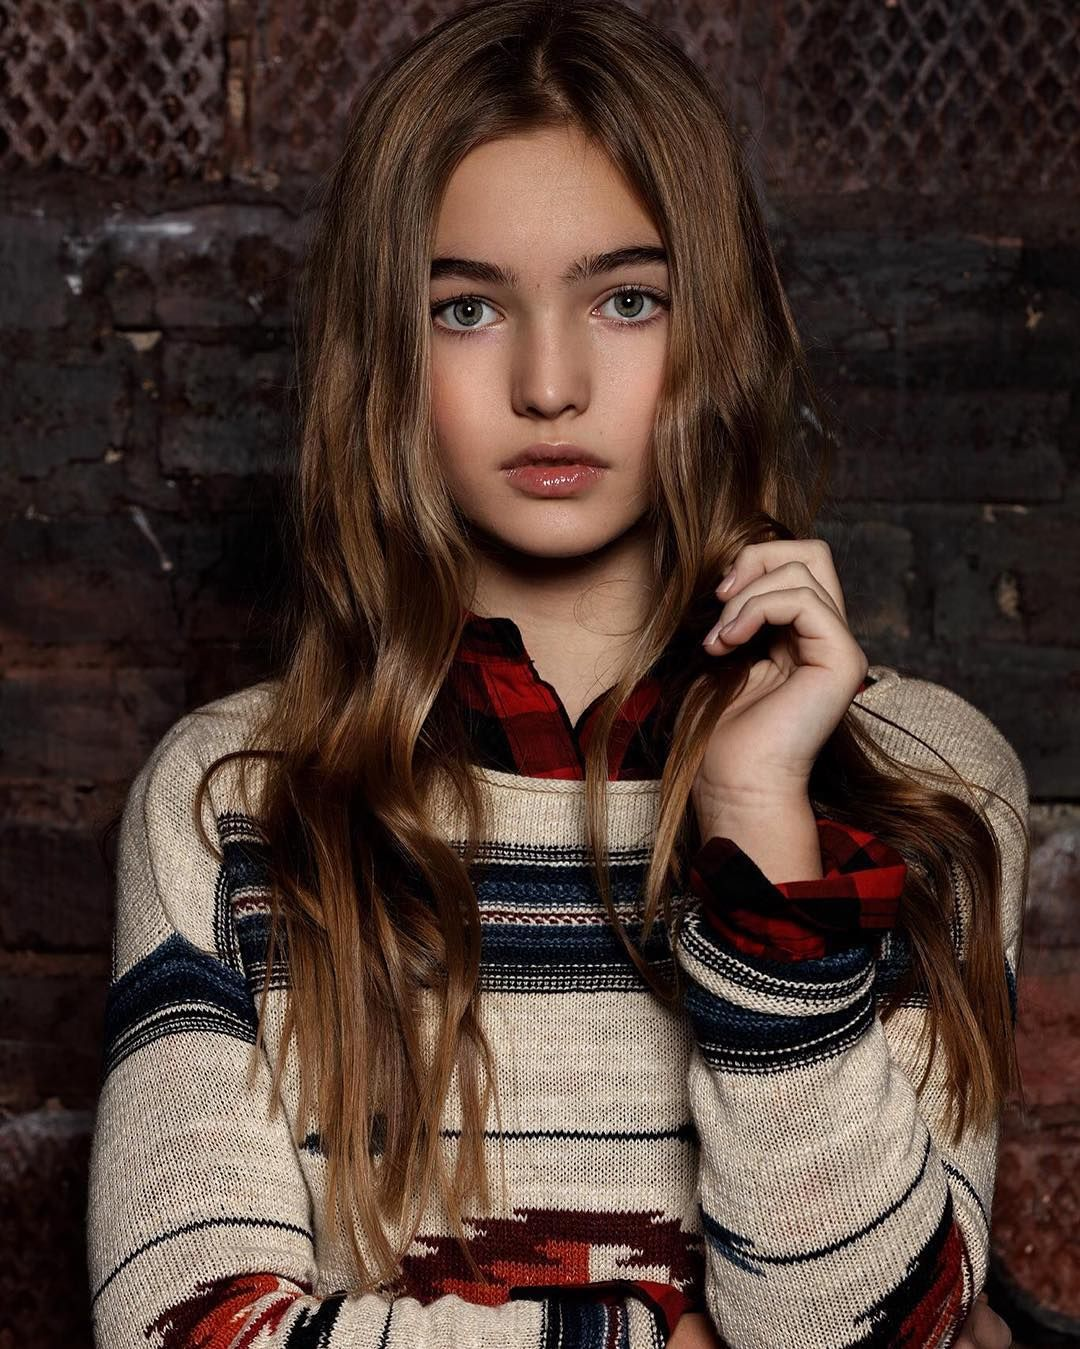 For council Young russian teen model consider